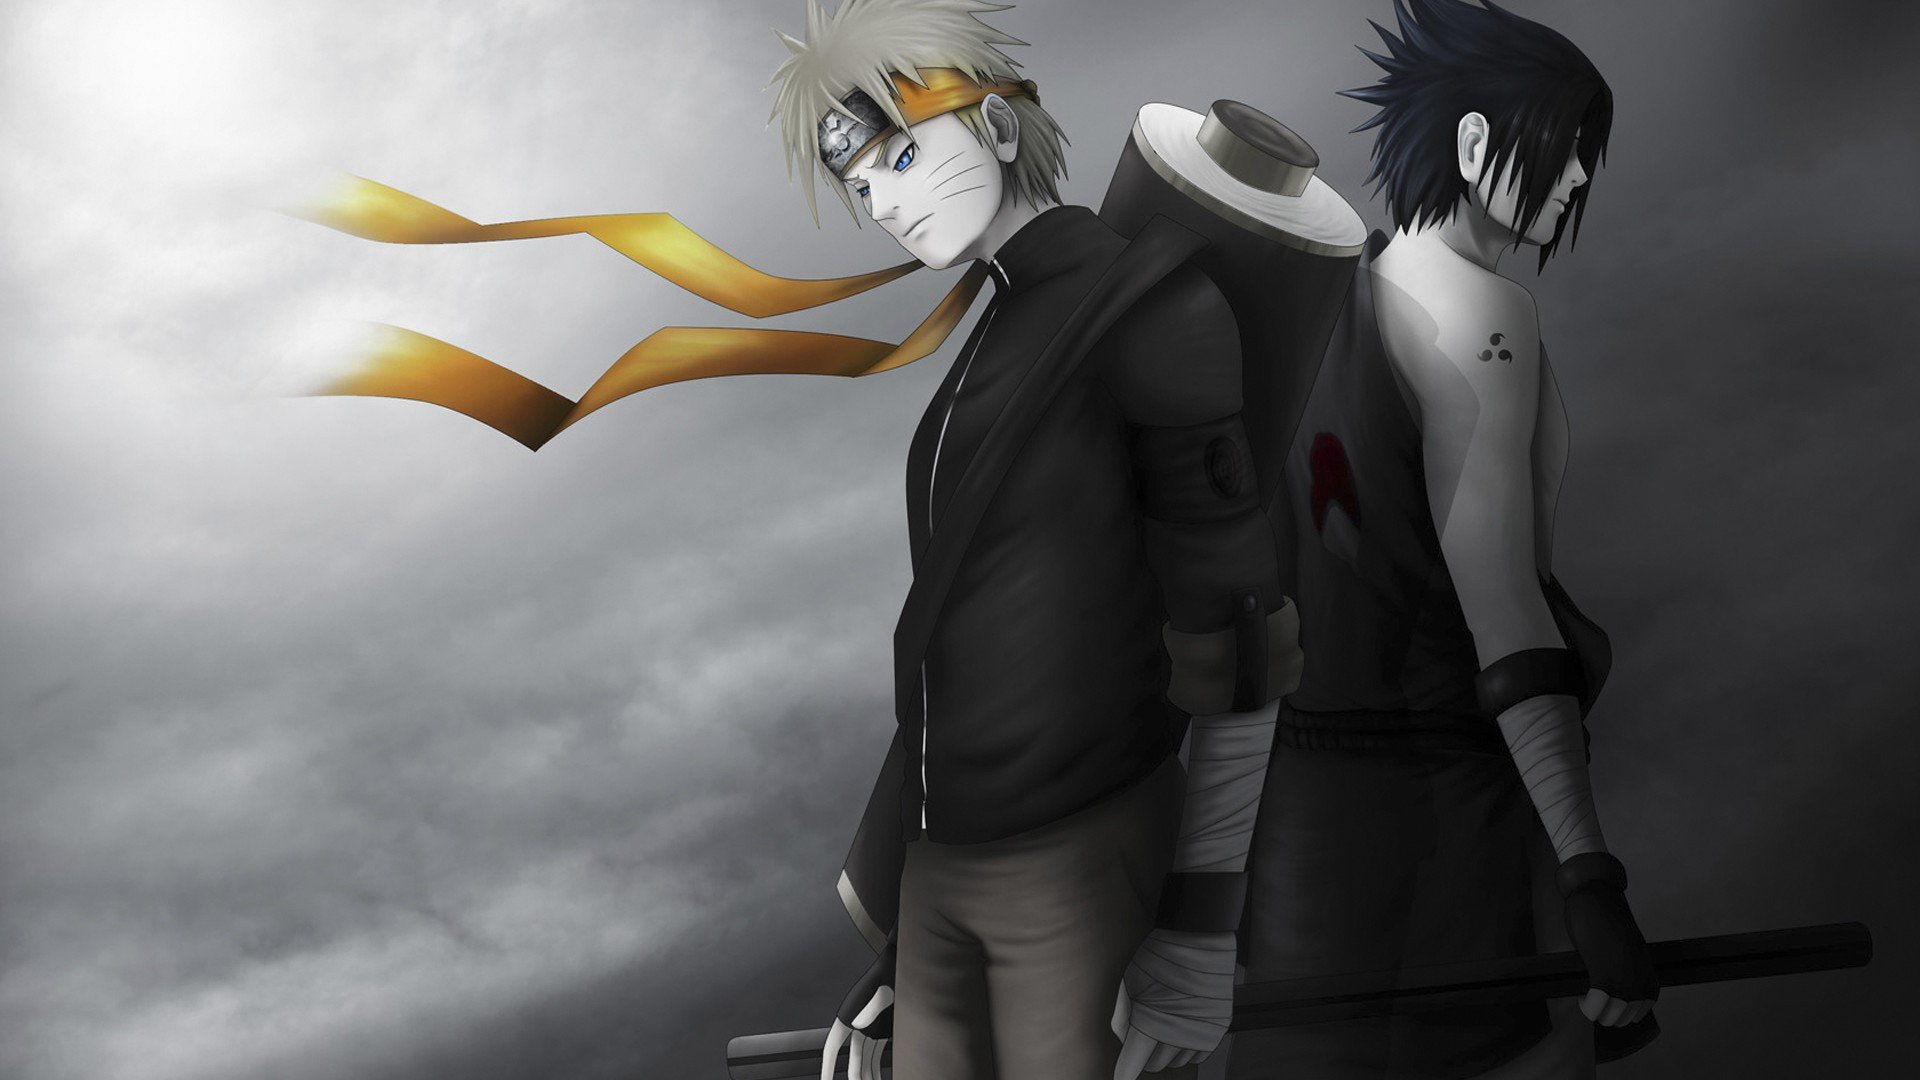 coolest naruto shippuden wallpapers